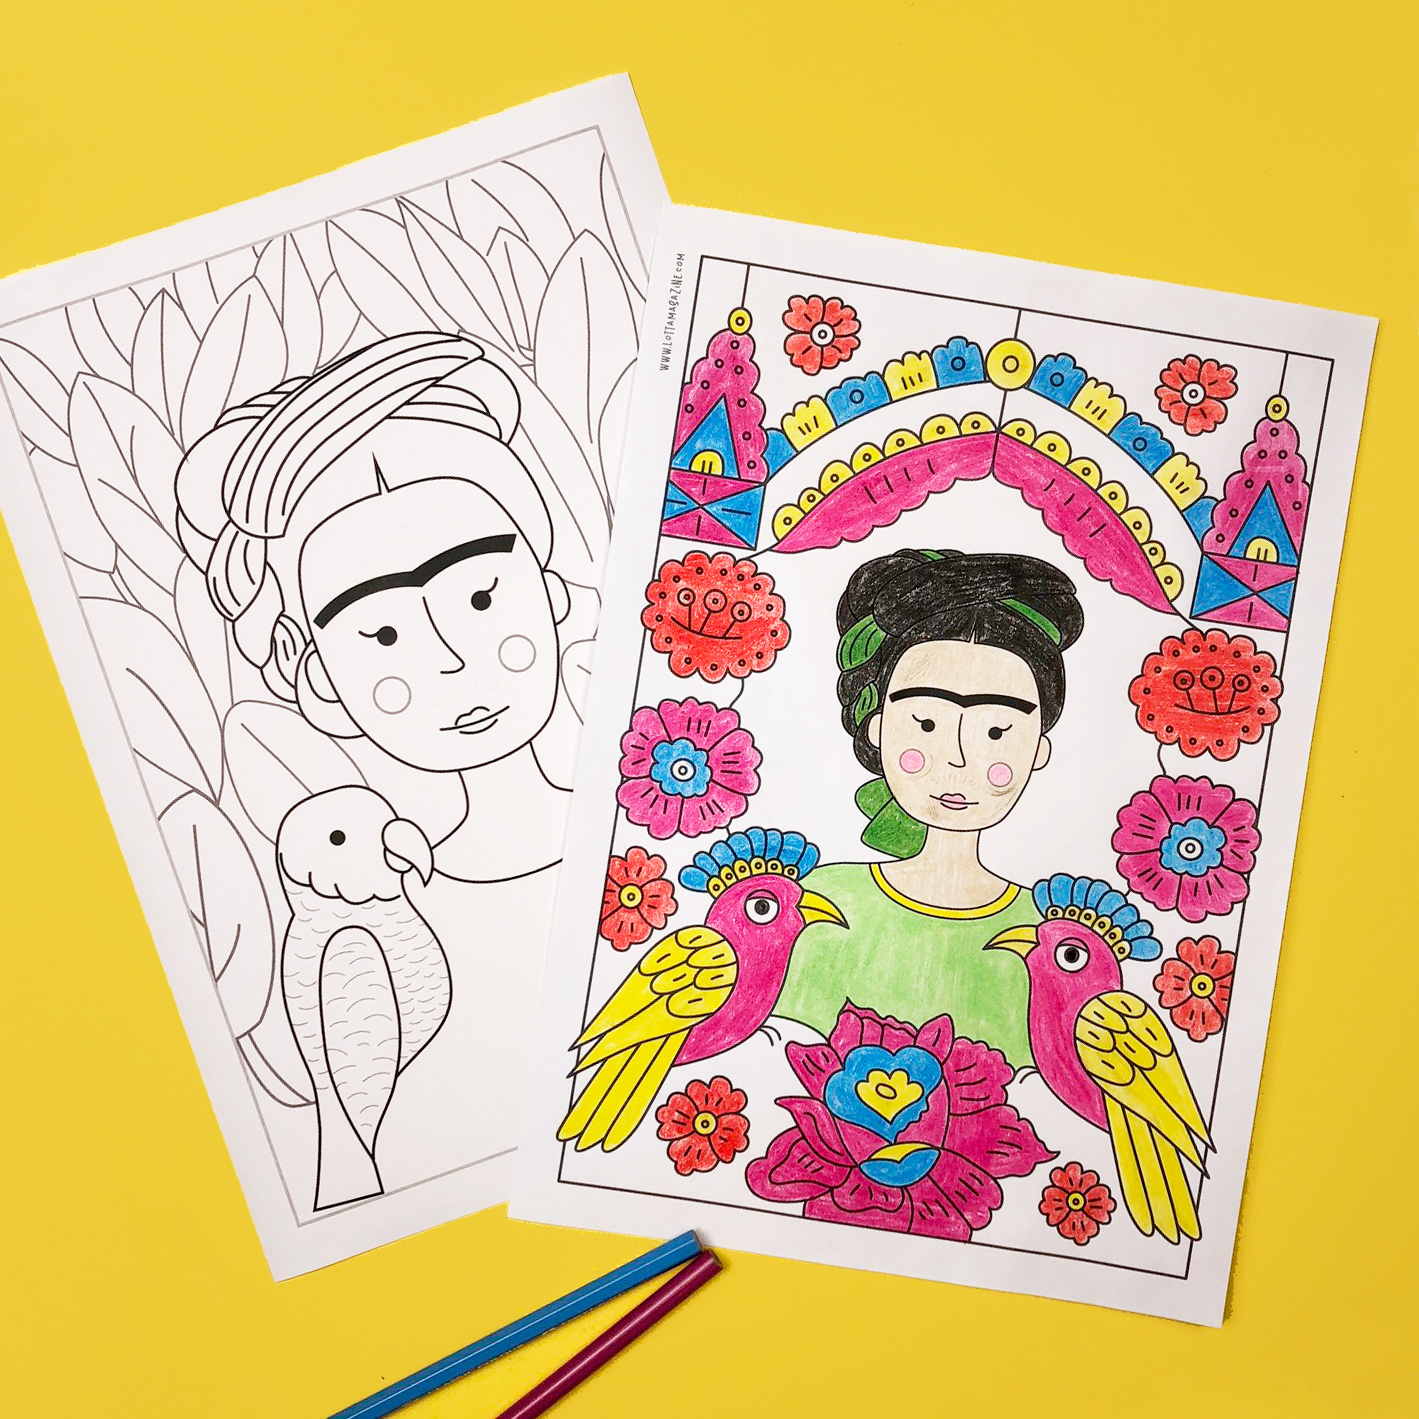 Frida kahlo colouring pages